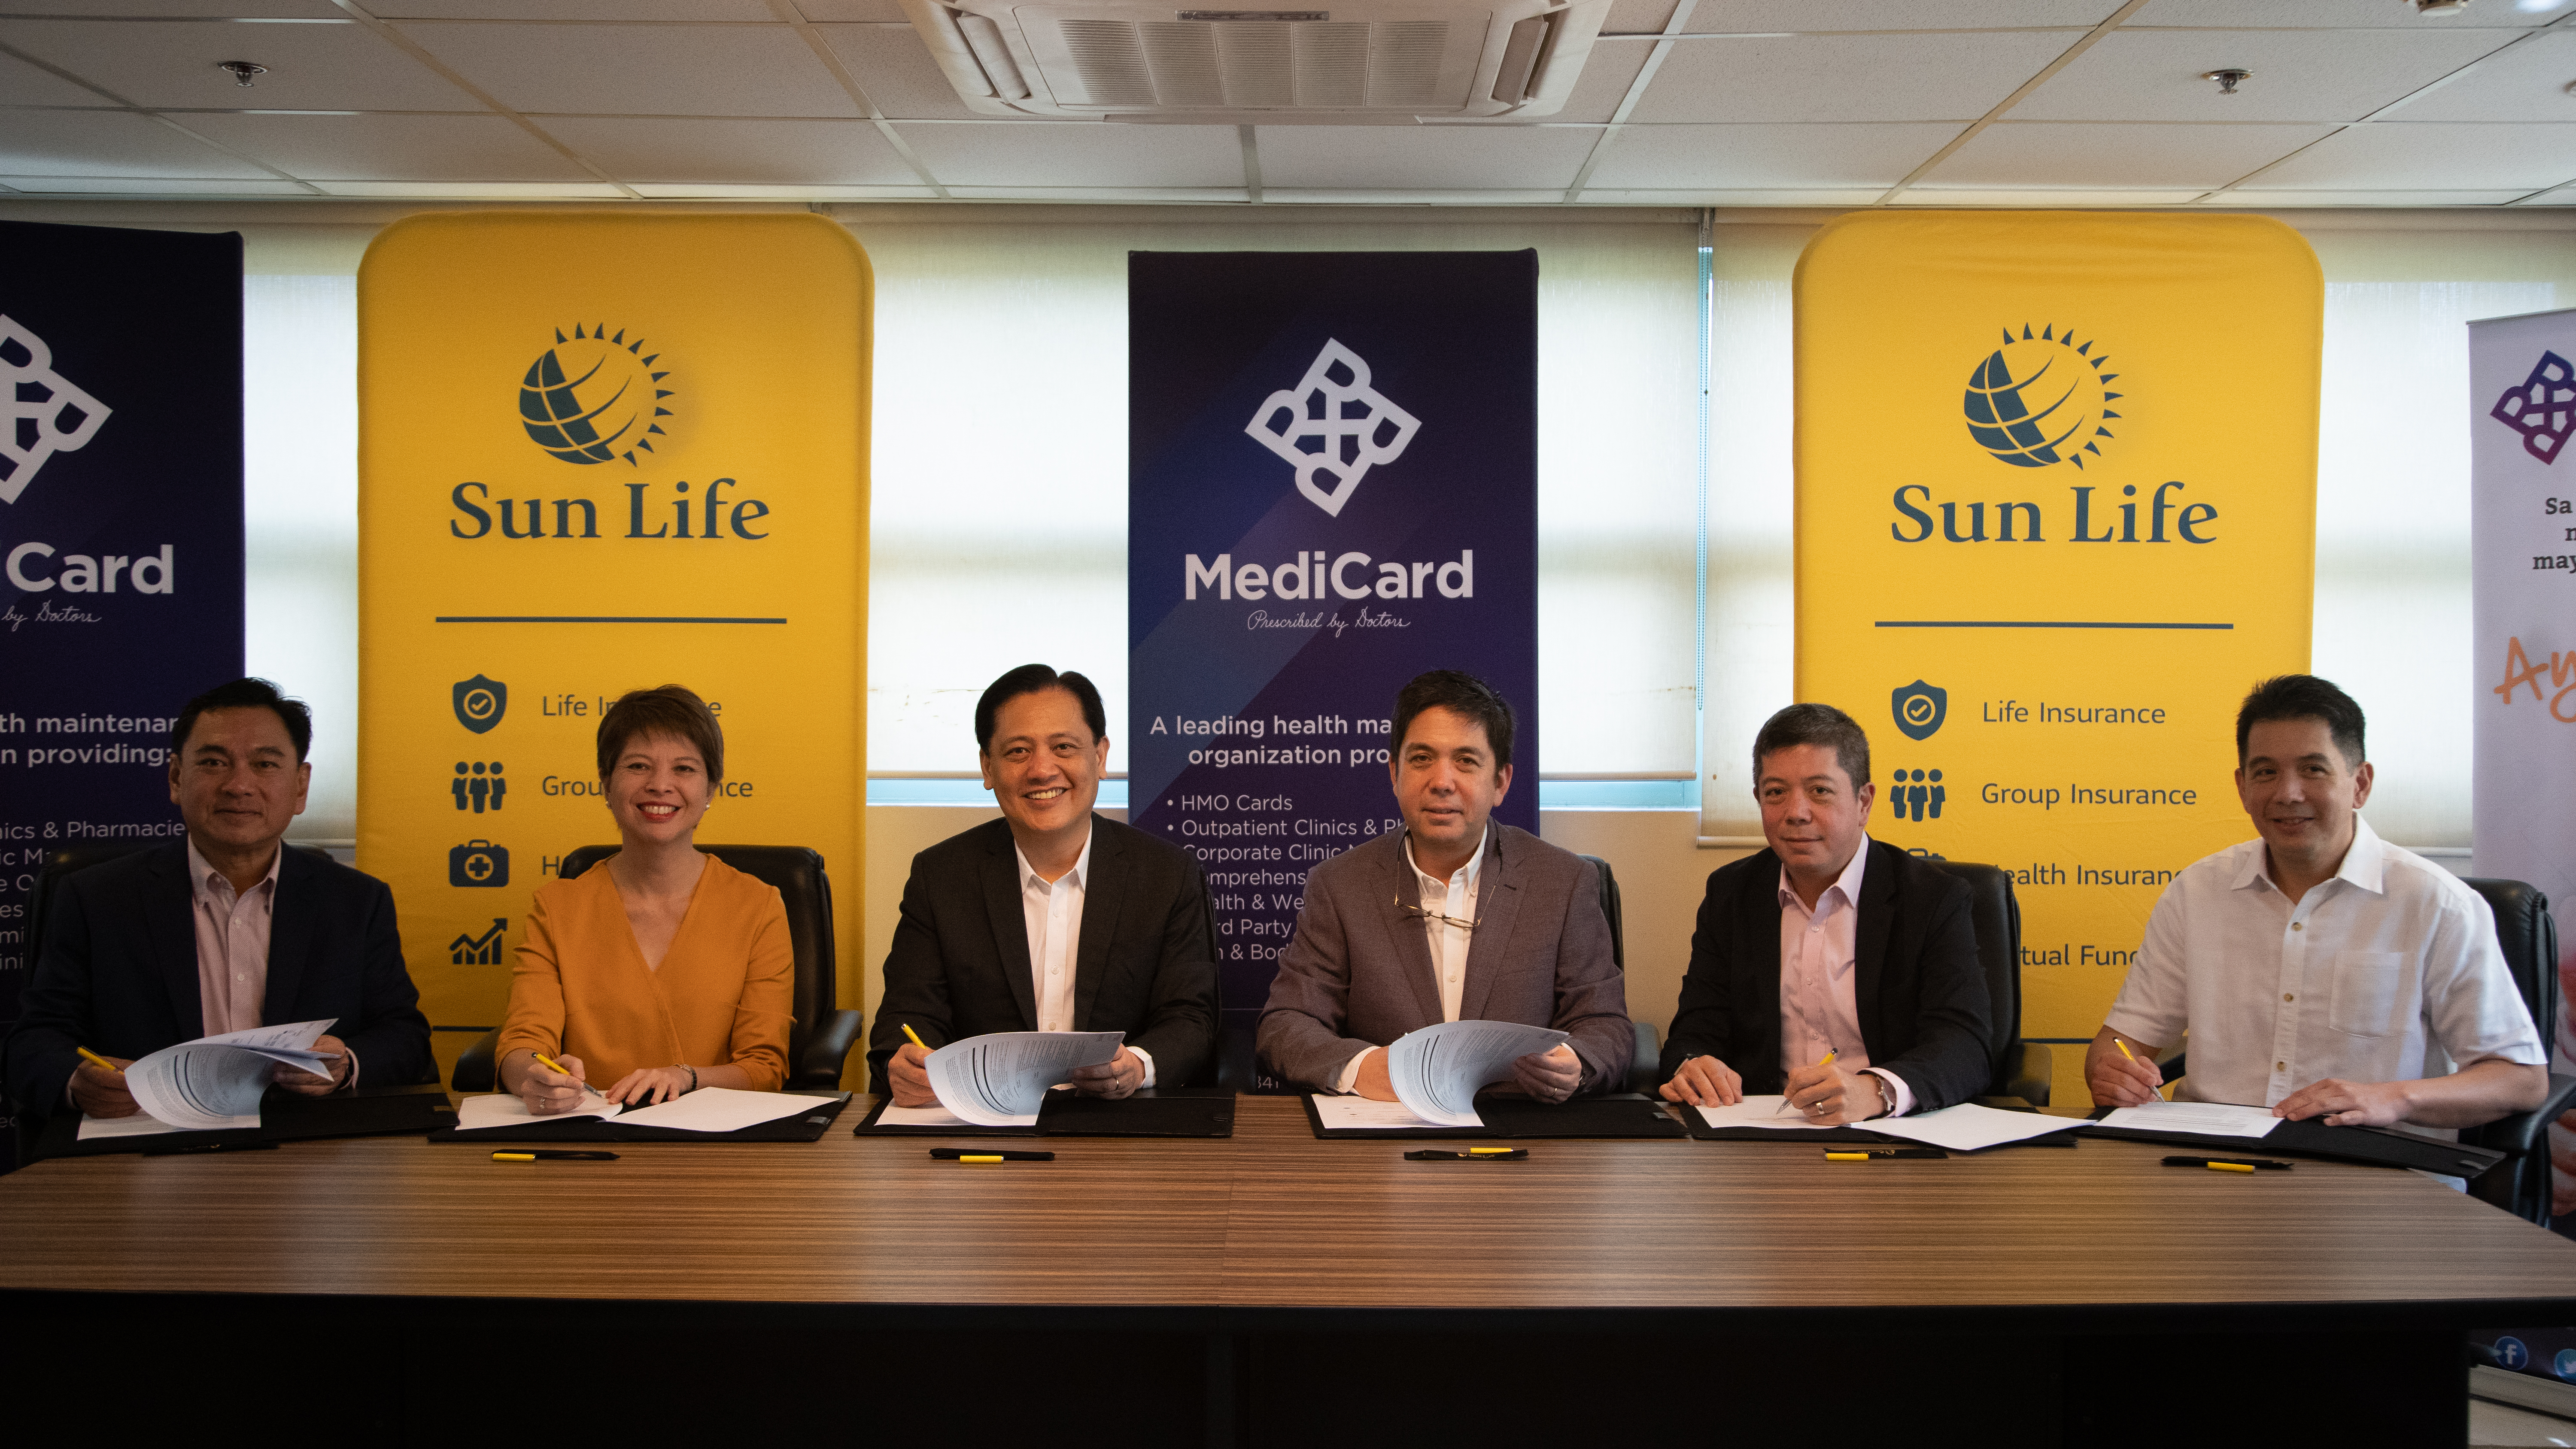 sun life personal accident insurance now available to medicard health check members